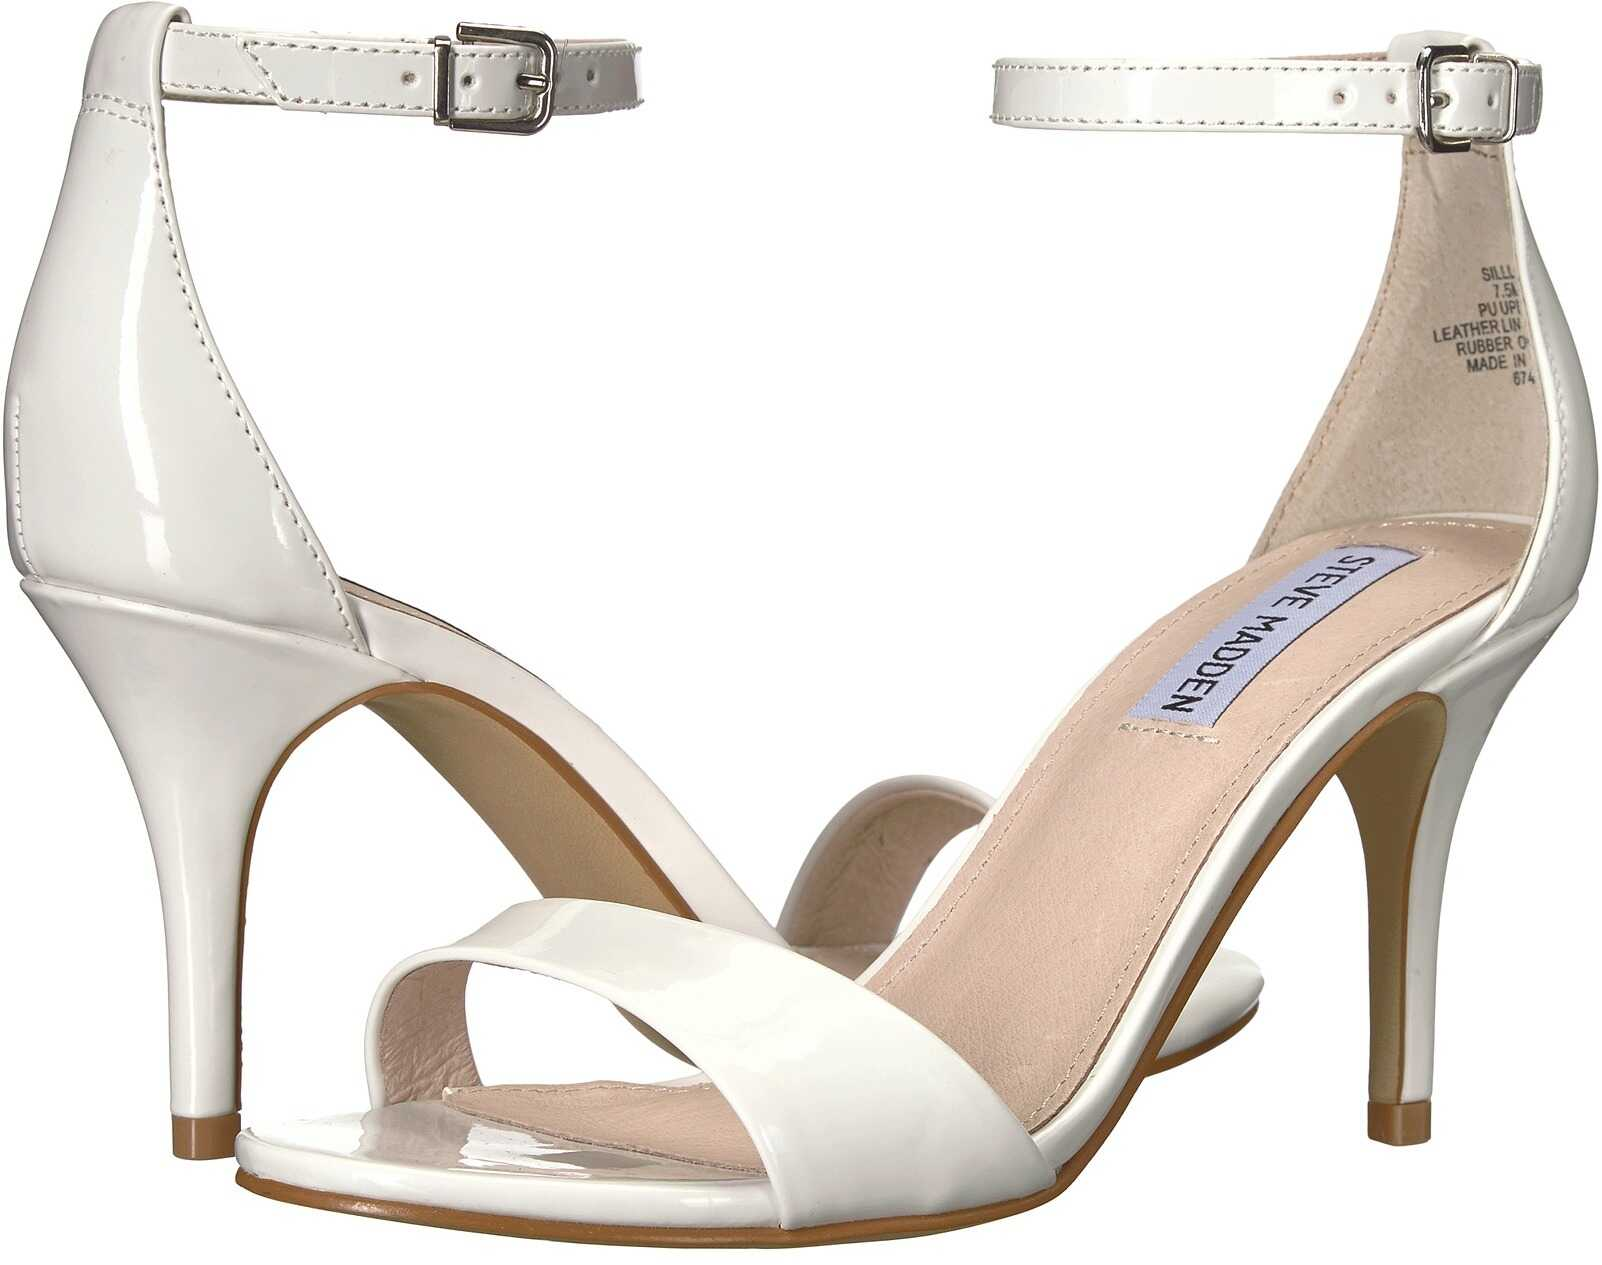 Steve Madden Exclusive - Sillly Sandal White Patent